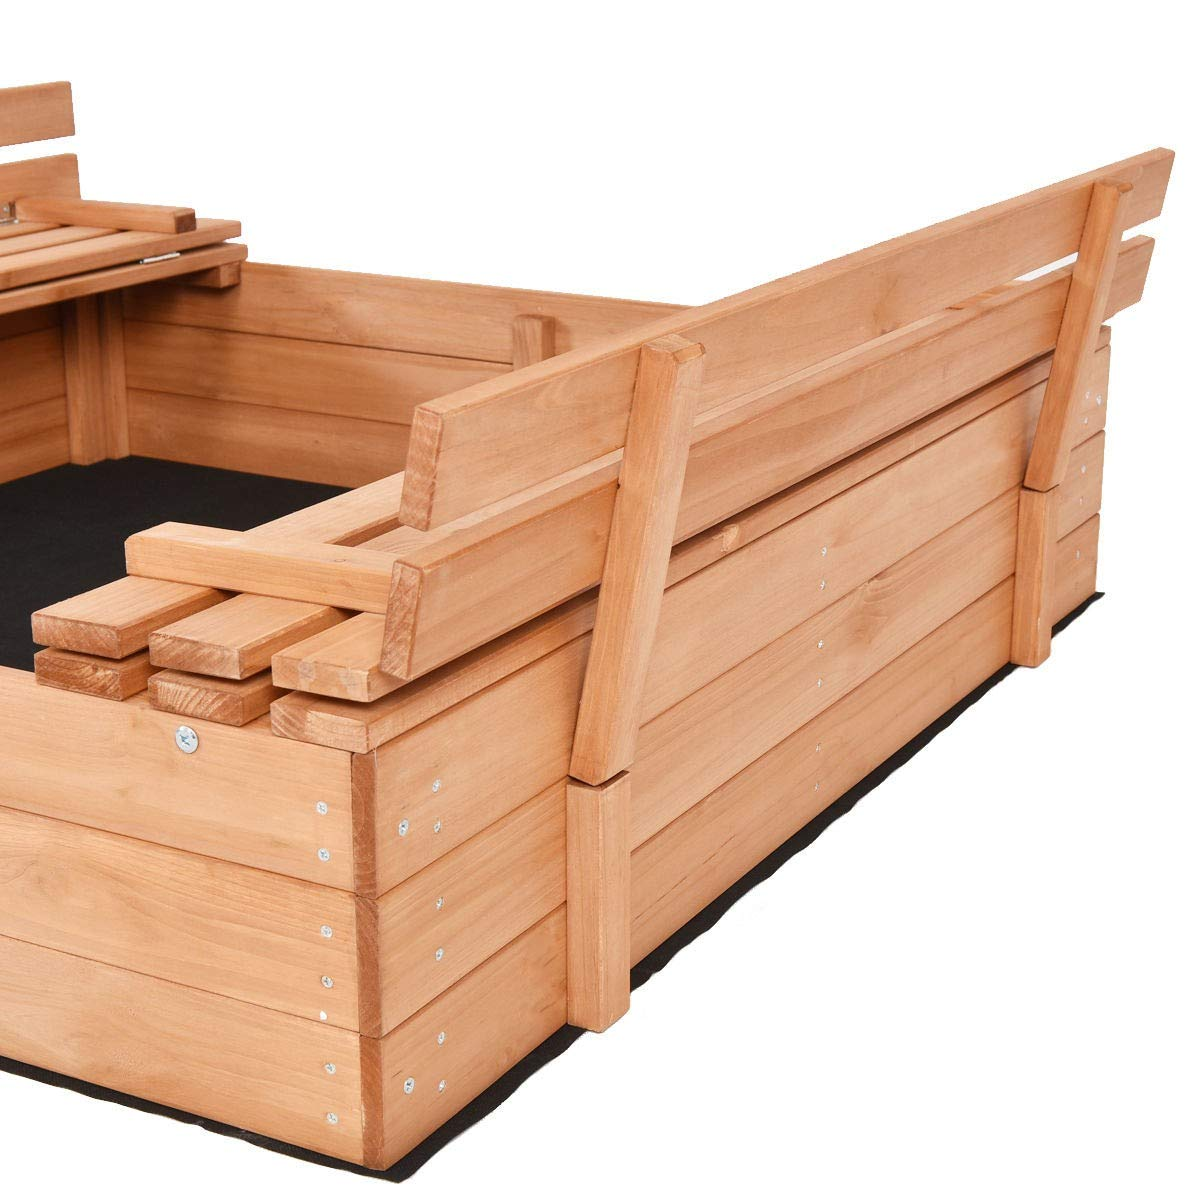 USA_BEST_SELLER Children Outdoor Foldable Retractable Sandbox Bench Seat Box by USA_BEST_SELLER (Image #6)